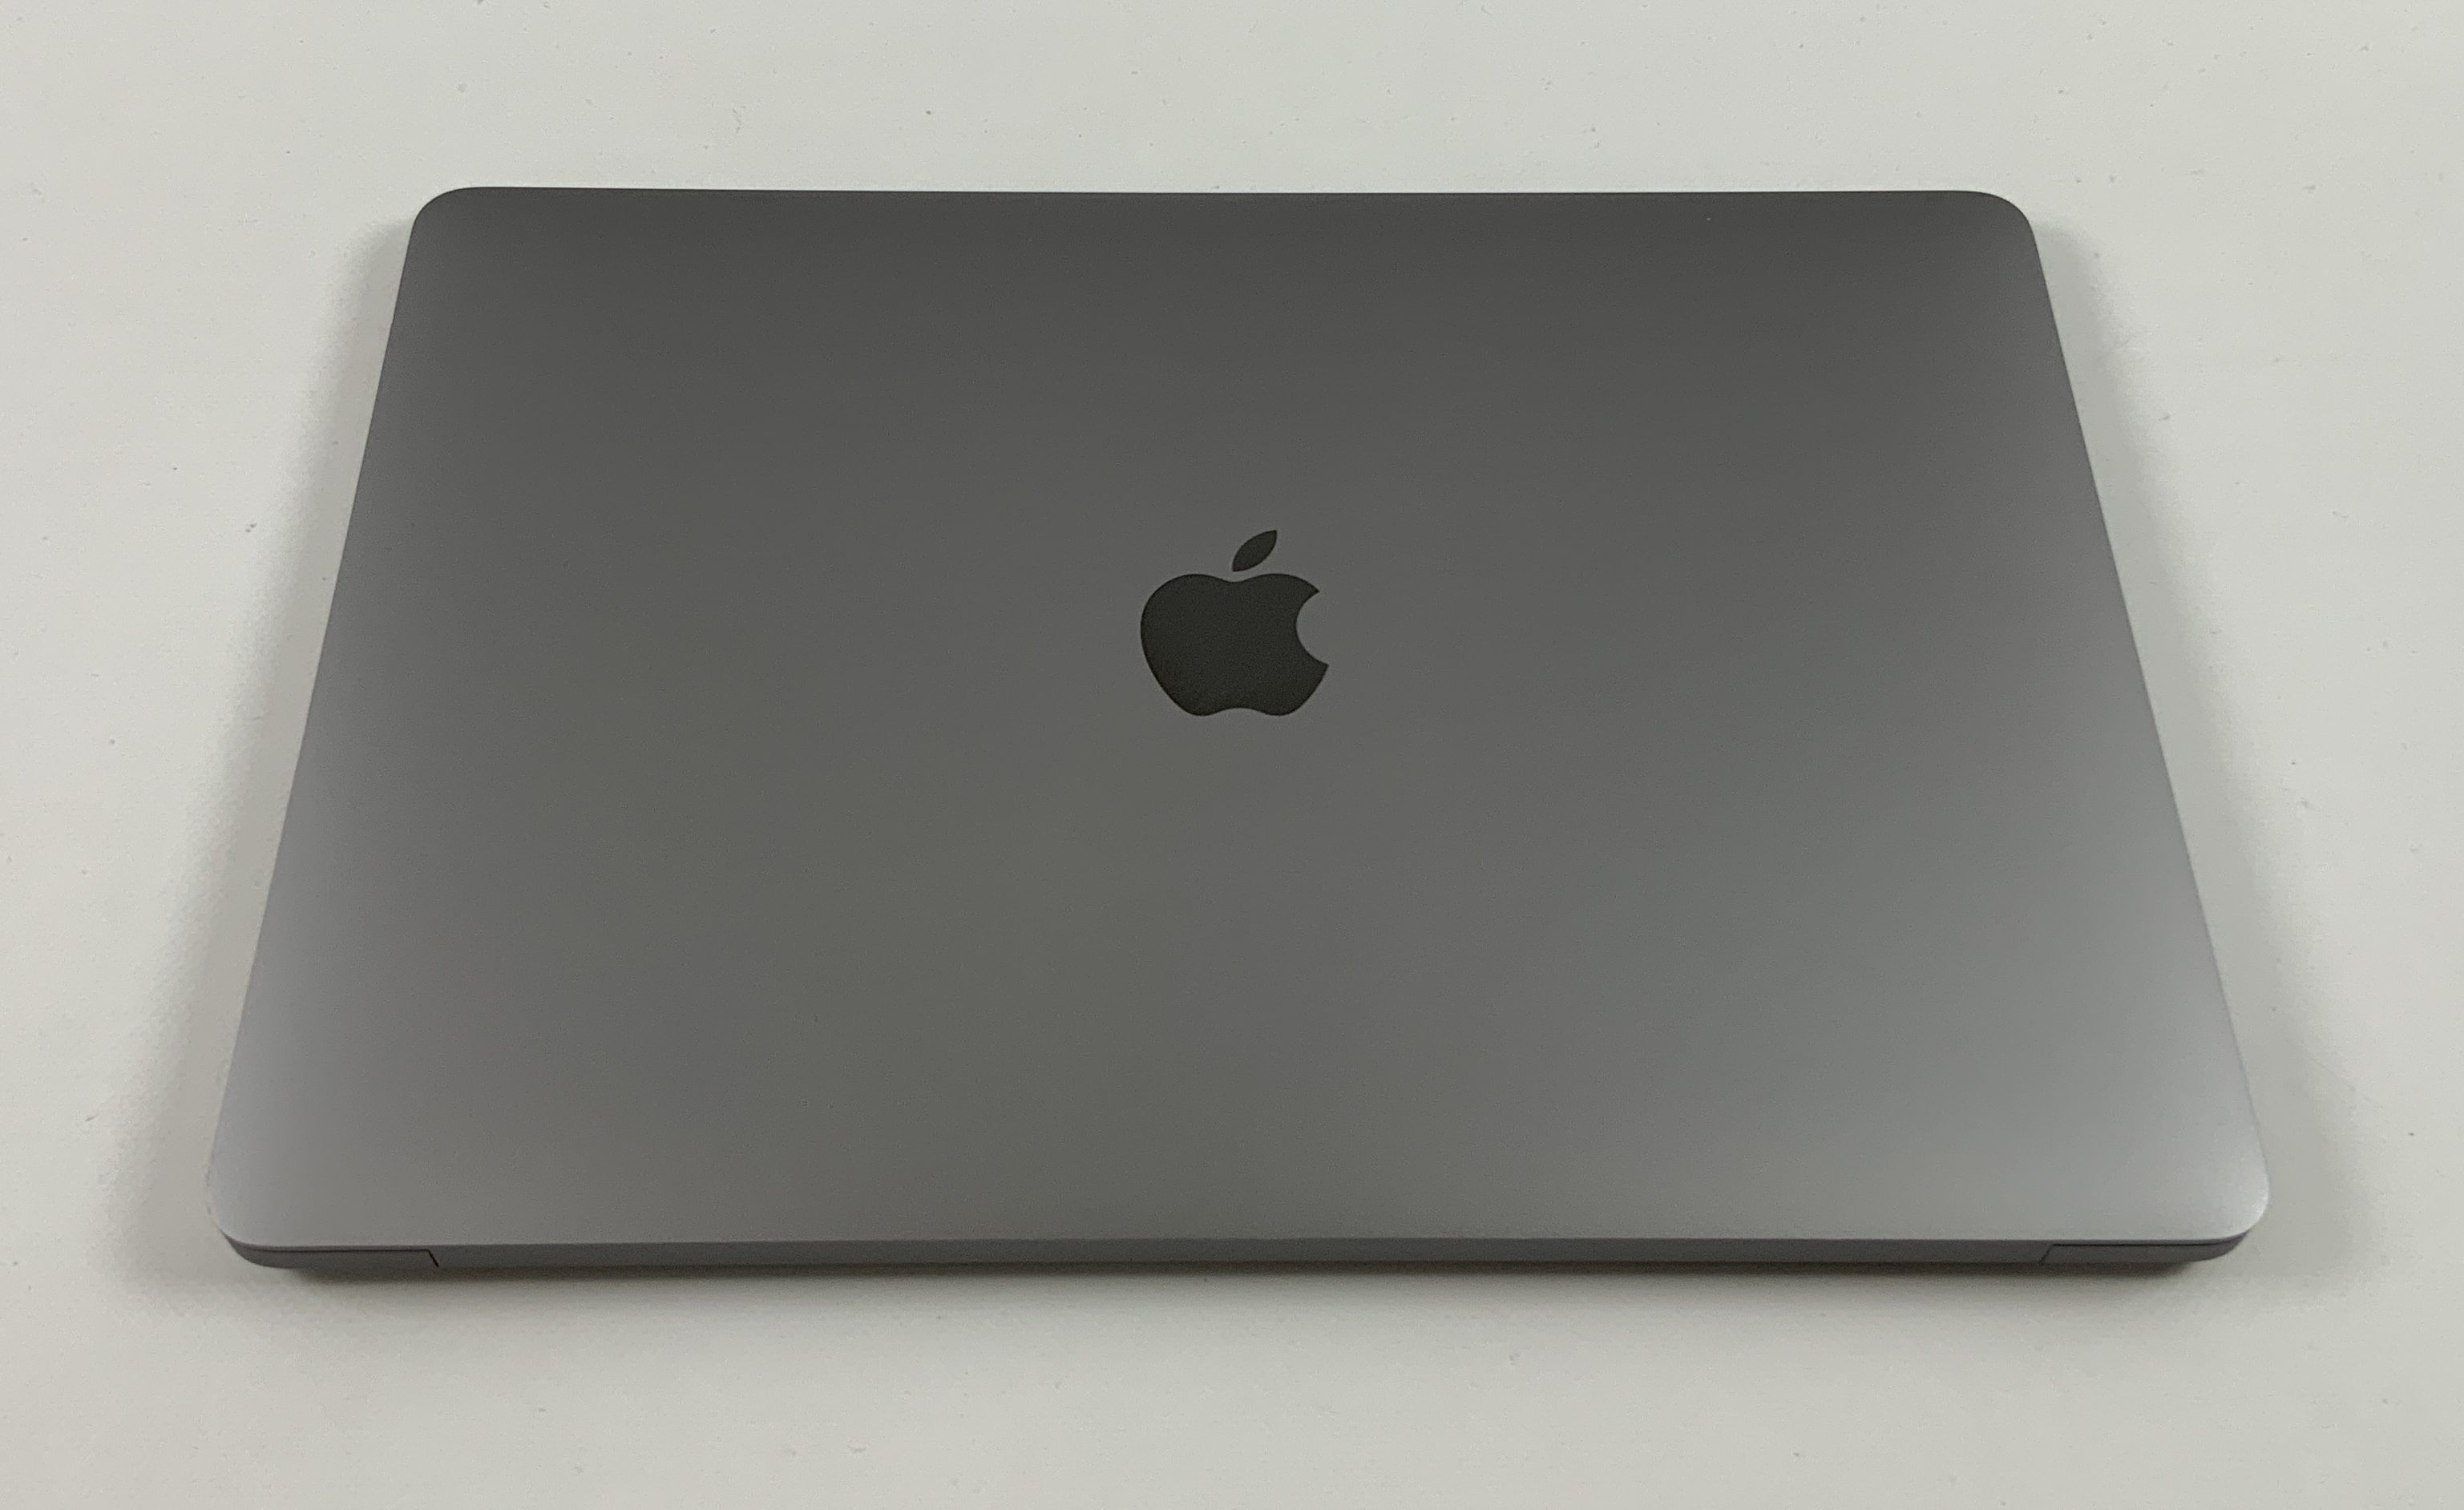 "MacBook Air 13"" Early 2020 (Intel Core i3 1.1 GHz 8 GB RAM 256 GB SSD), Space Gray, Intel Core i3 1.1 GHz, 8 GB RAM, 256 GB SSD, Kuva 2"